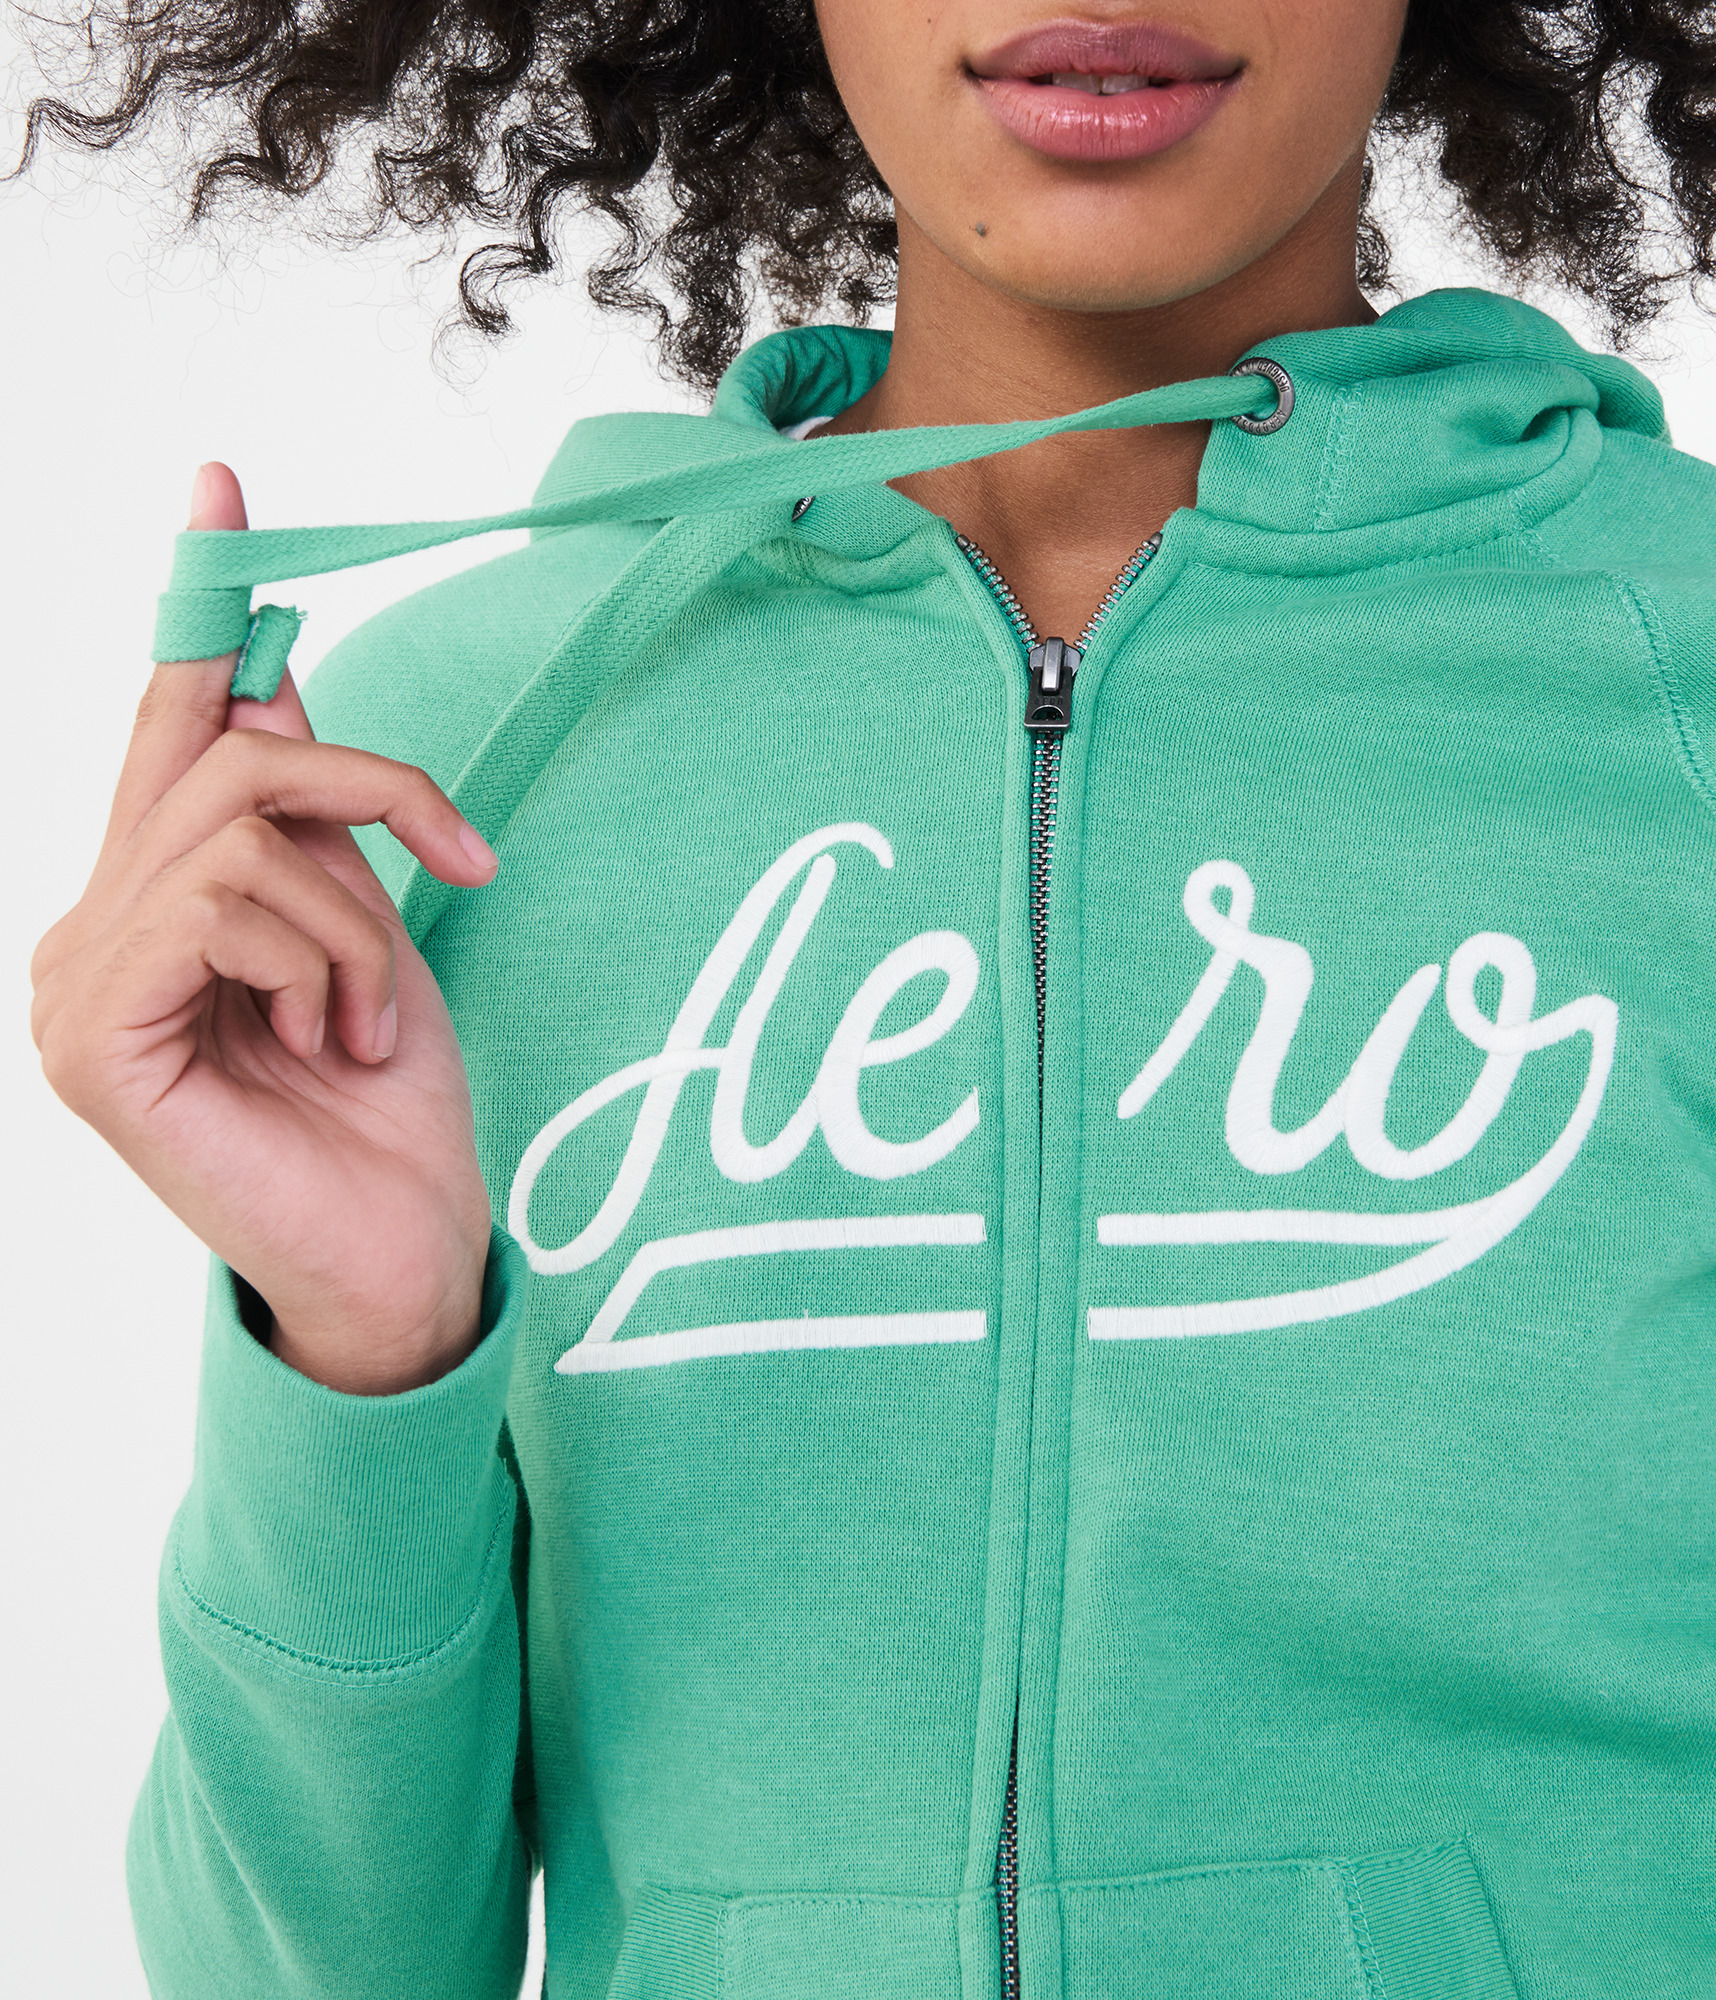 a9a935673 Details about aeropostale womens aero logo full-zip hoodie